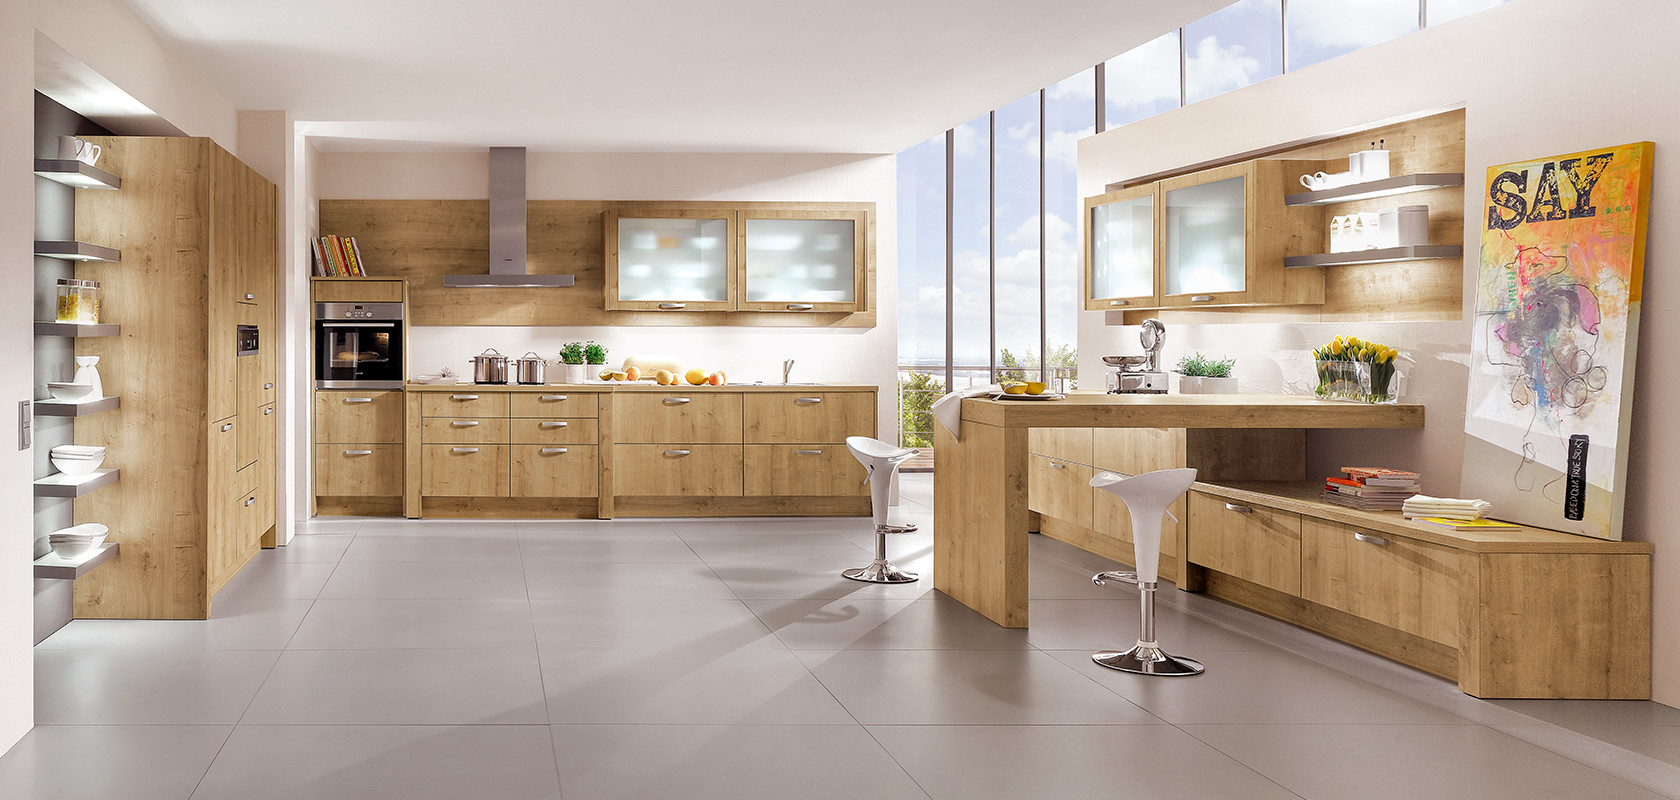 Cucina e zona Living marca Nobilia Made in Germany.